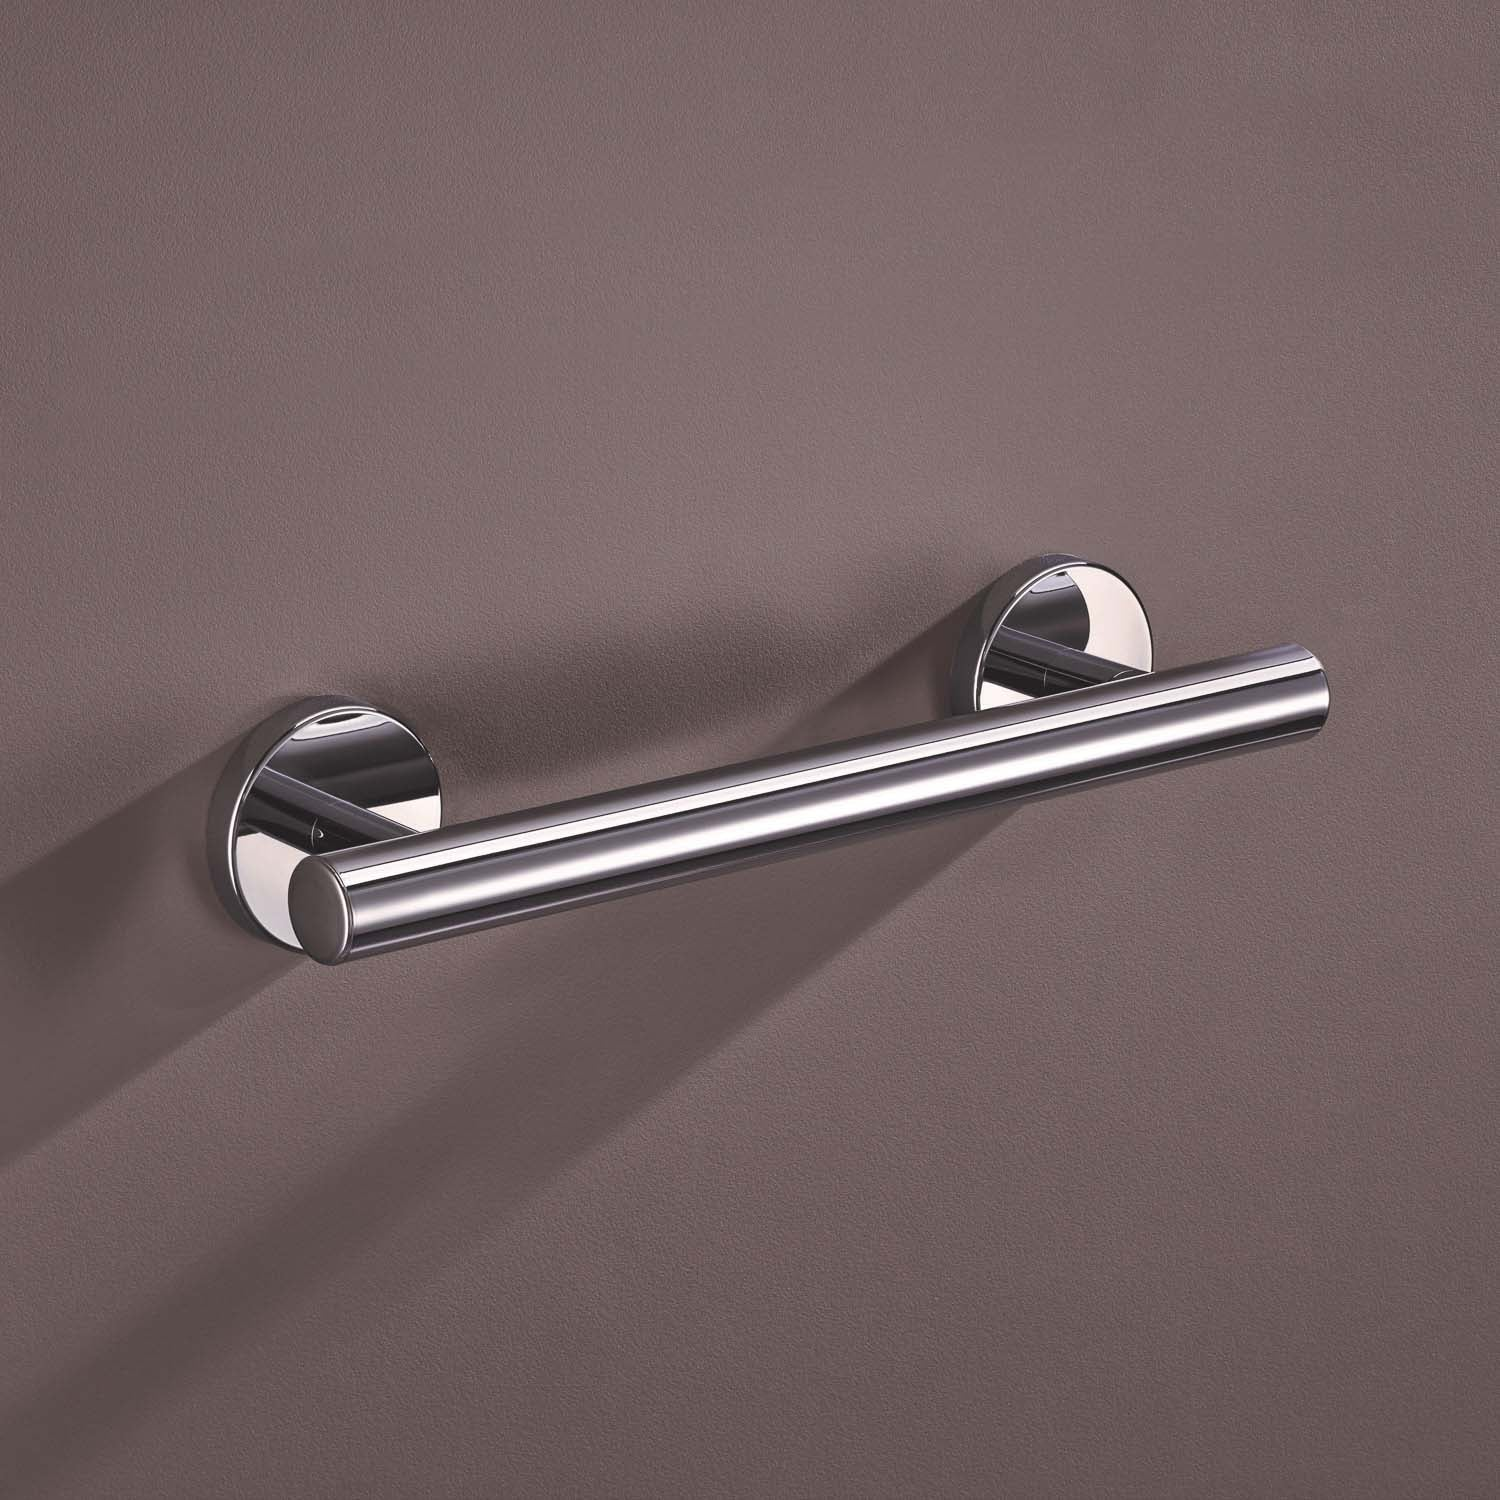 400mm Warm Touch Circula Removable Straight Grab Rail with a chrome look finish lifestyle image